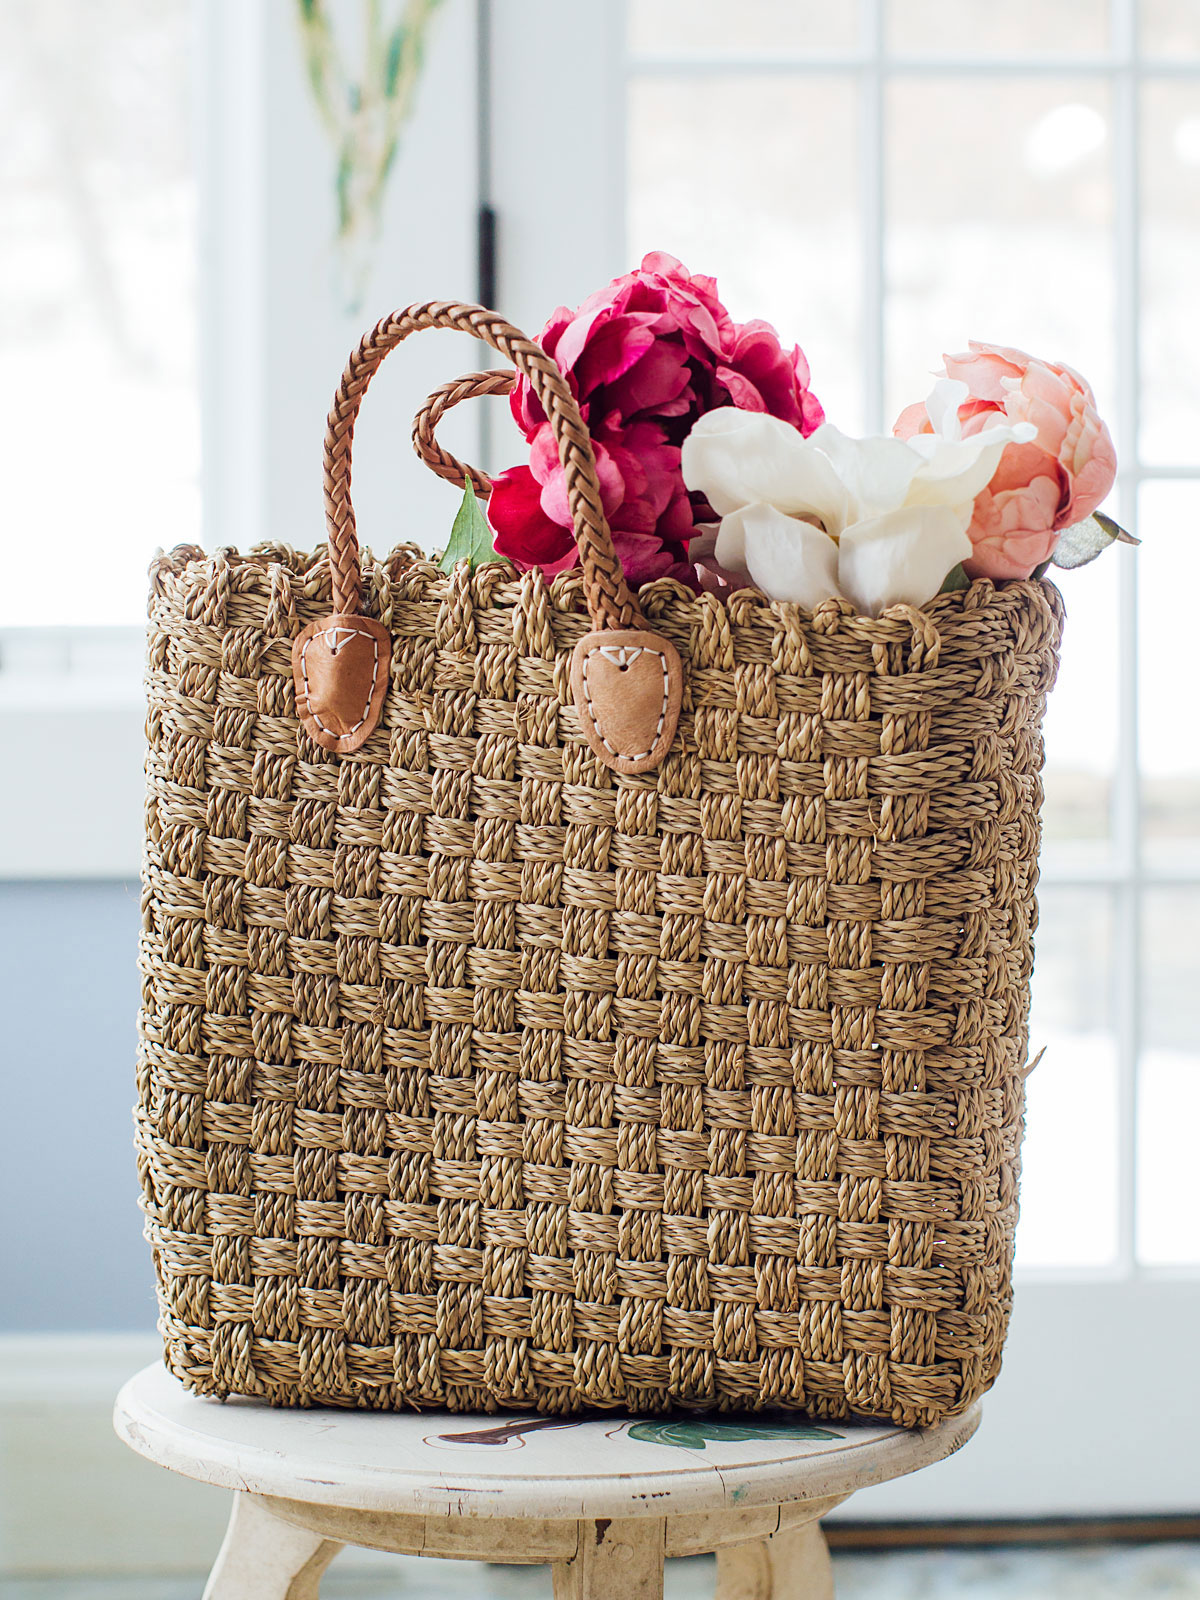 Granada Straw Shopper Bag